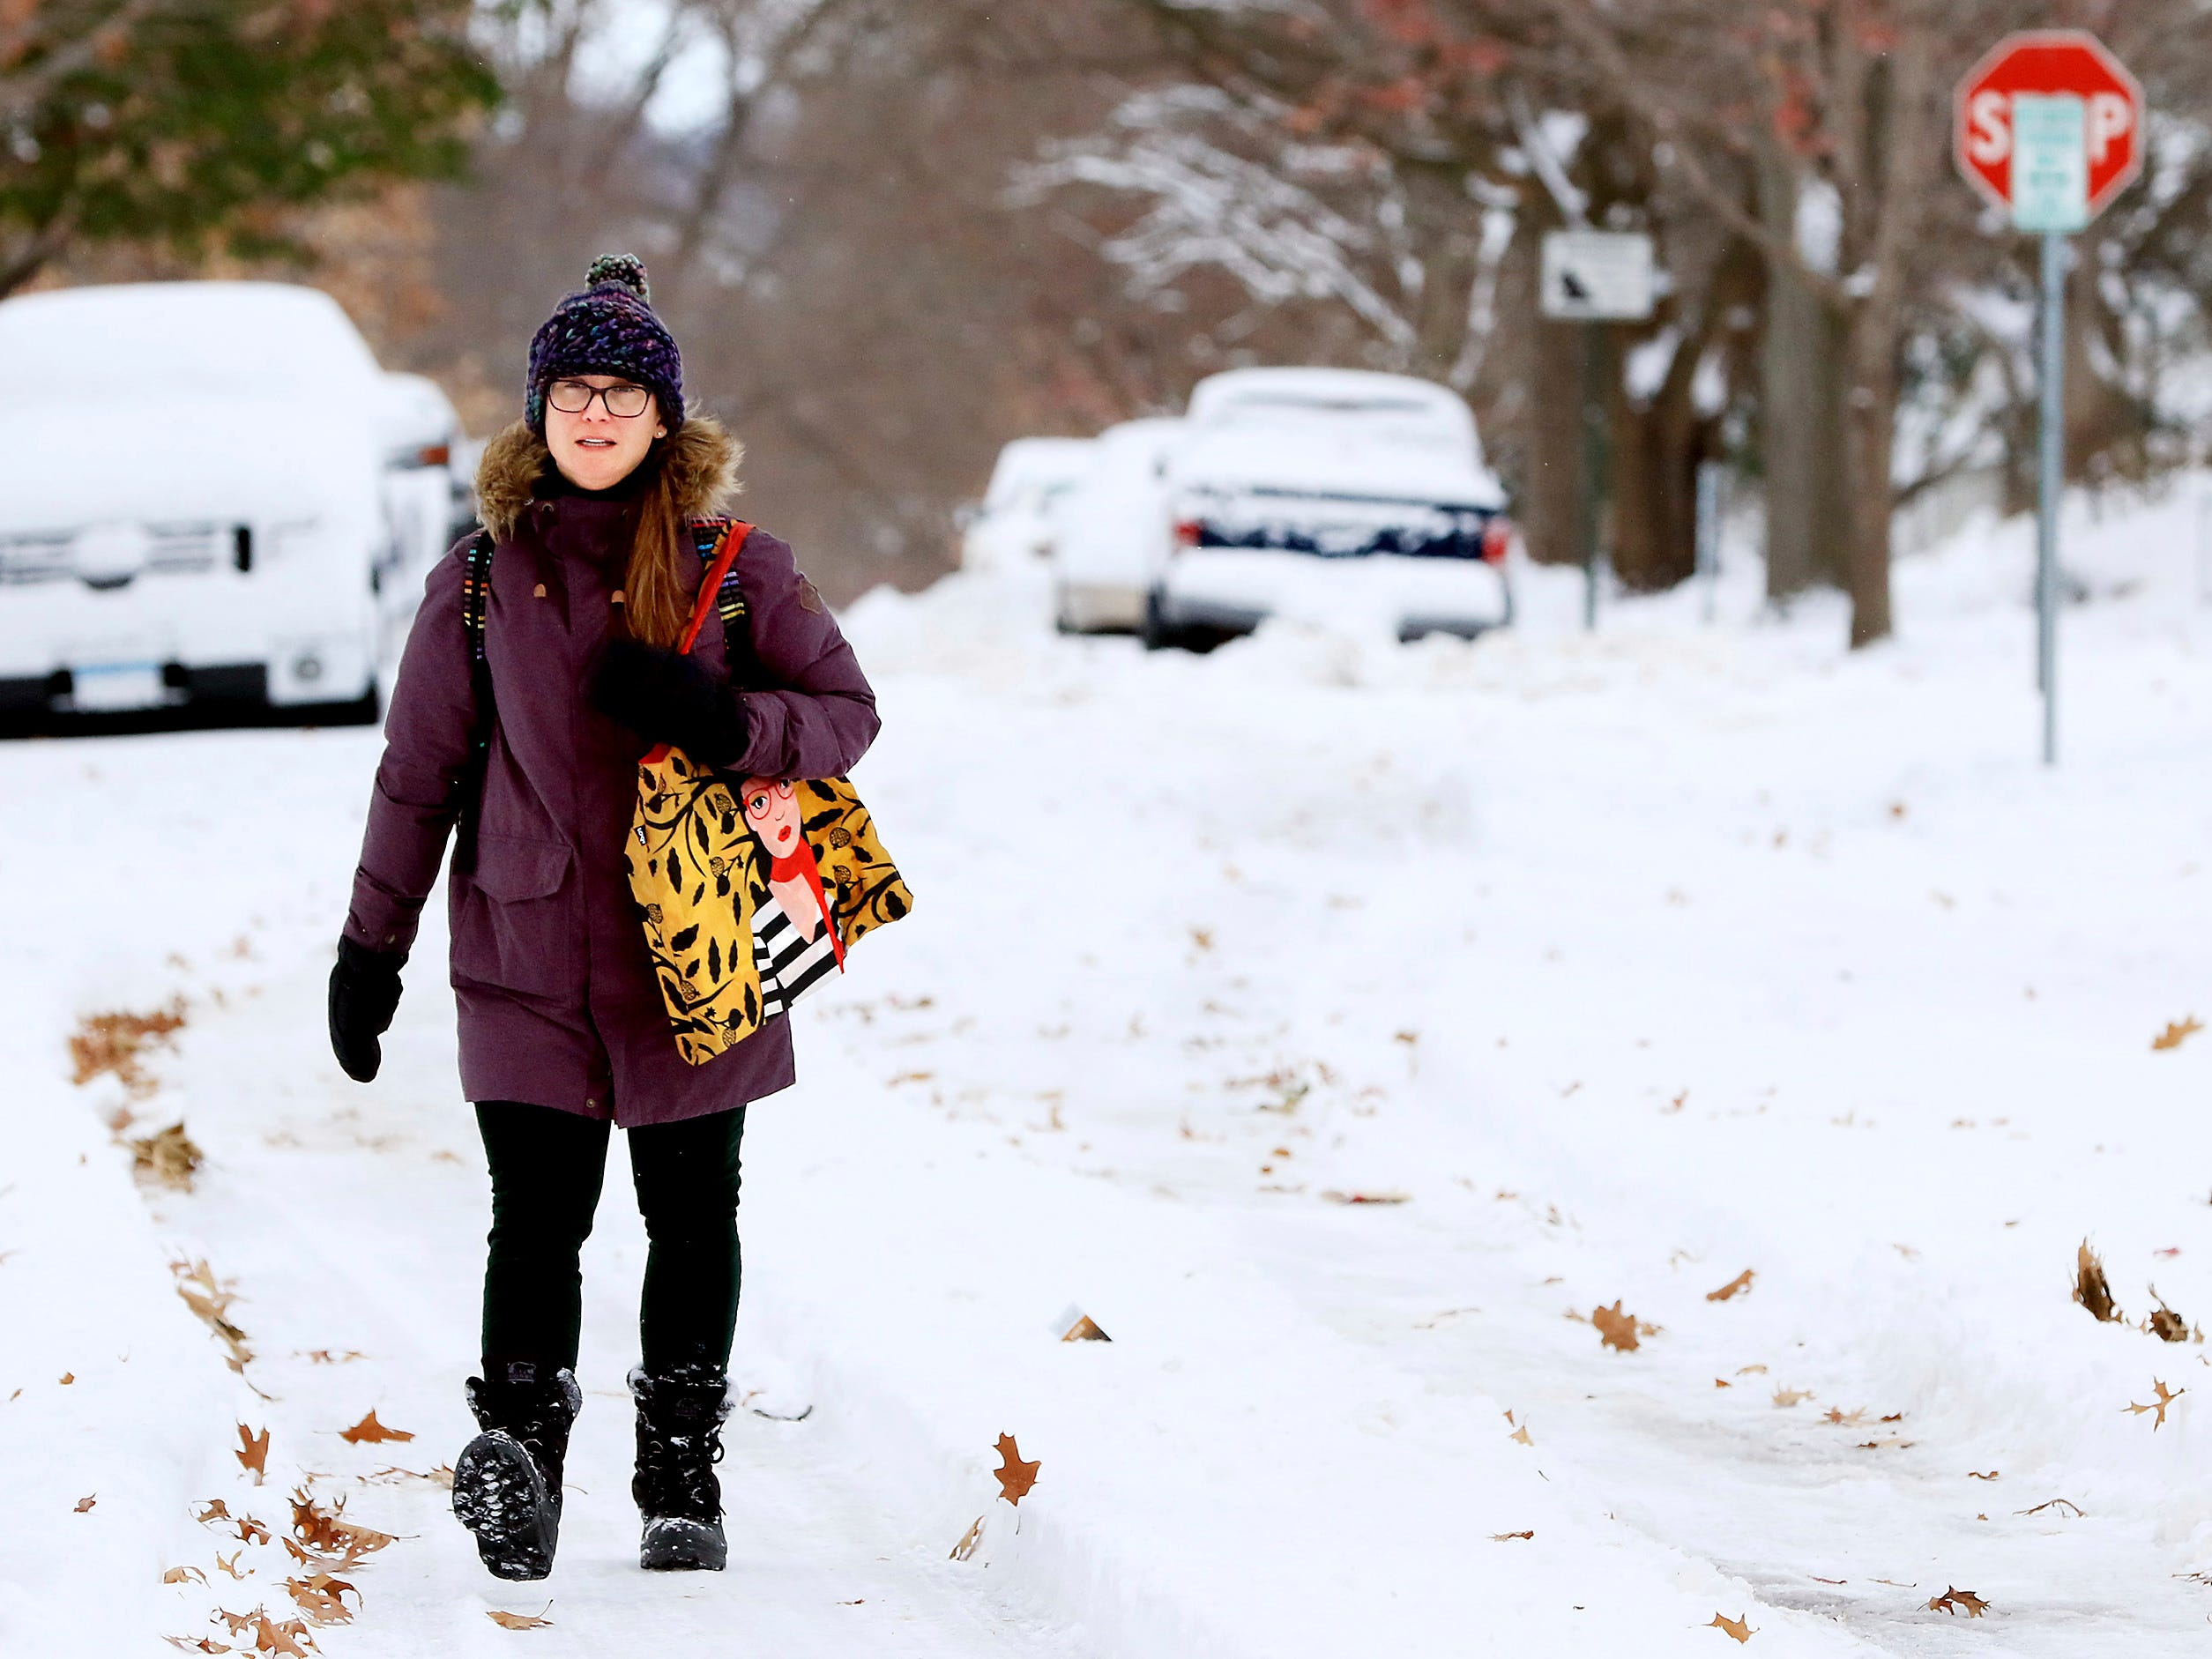 Avoiding snow covered sidewalks St. Ambrose University librarian Jennifer Smith walks along Ripley Street in Davenport, Iowa, on her way to work Nov. 26, 2018.